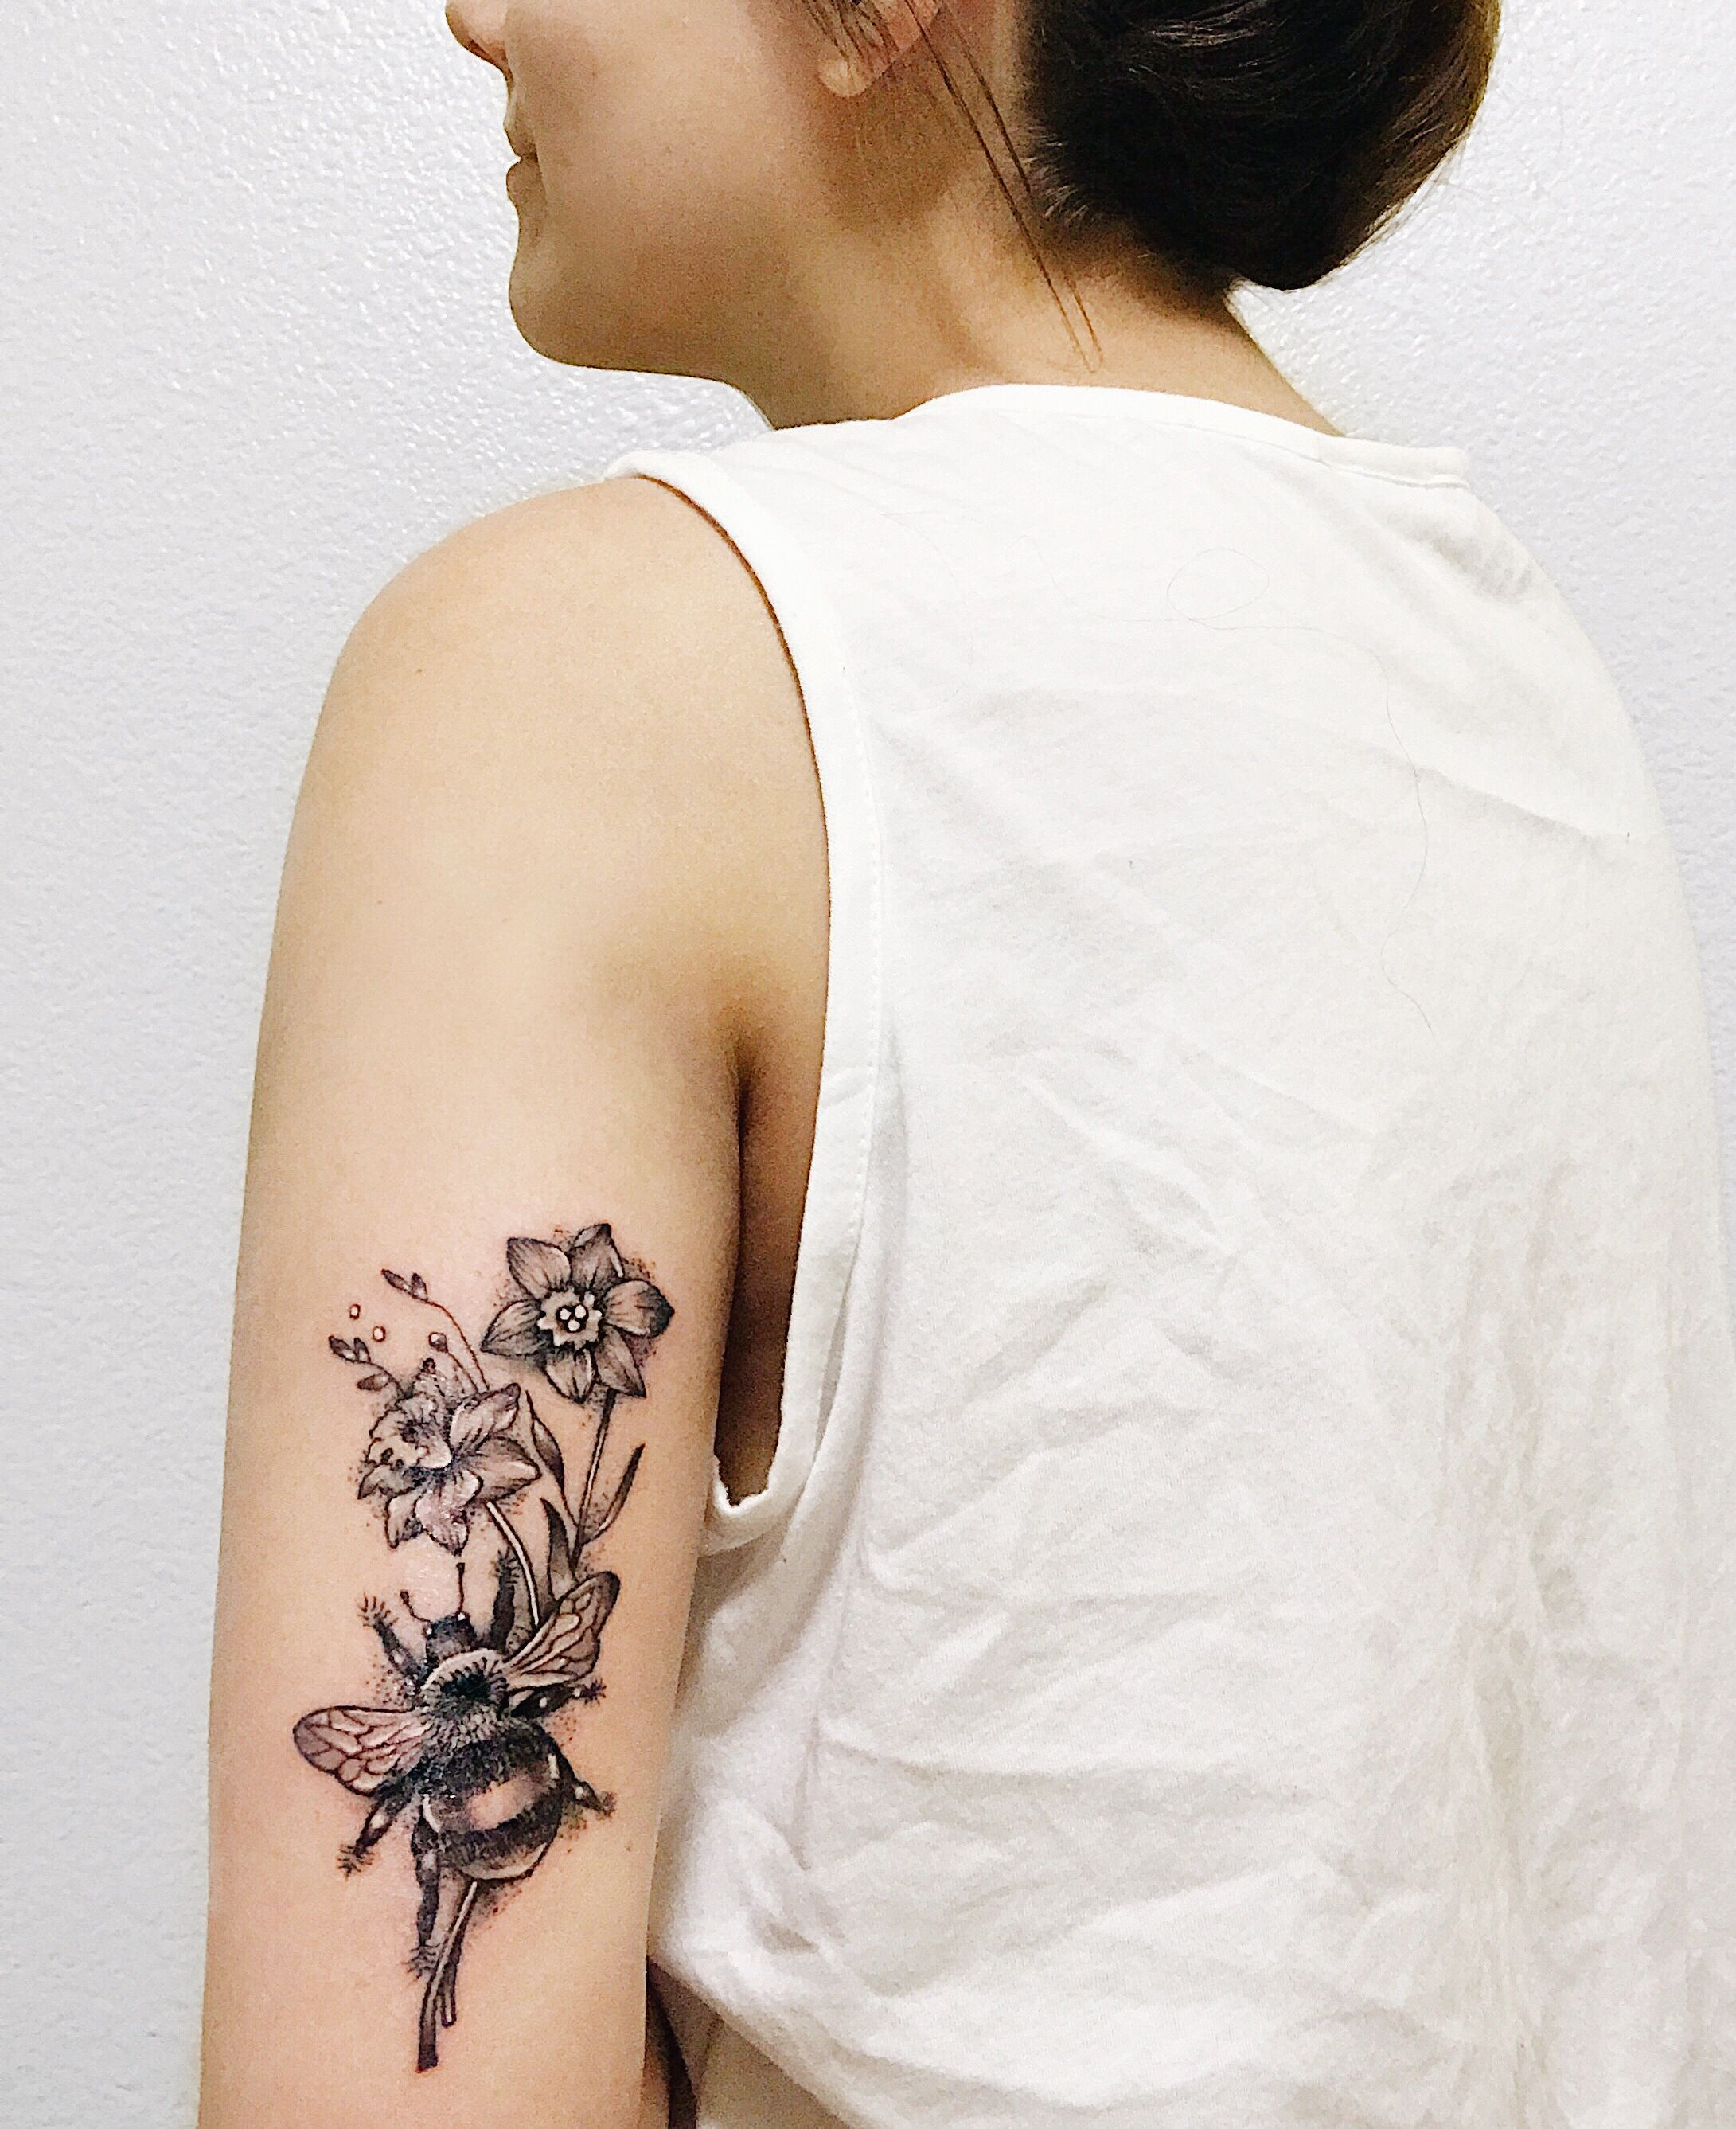 December Birth Flower Narcissus Bumble Bee Tattoo Birth Flower Tattoos Bee And Flower Tattoo Narcissus Tattoo